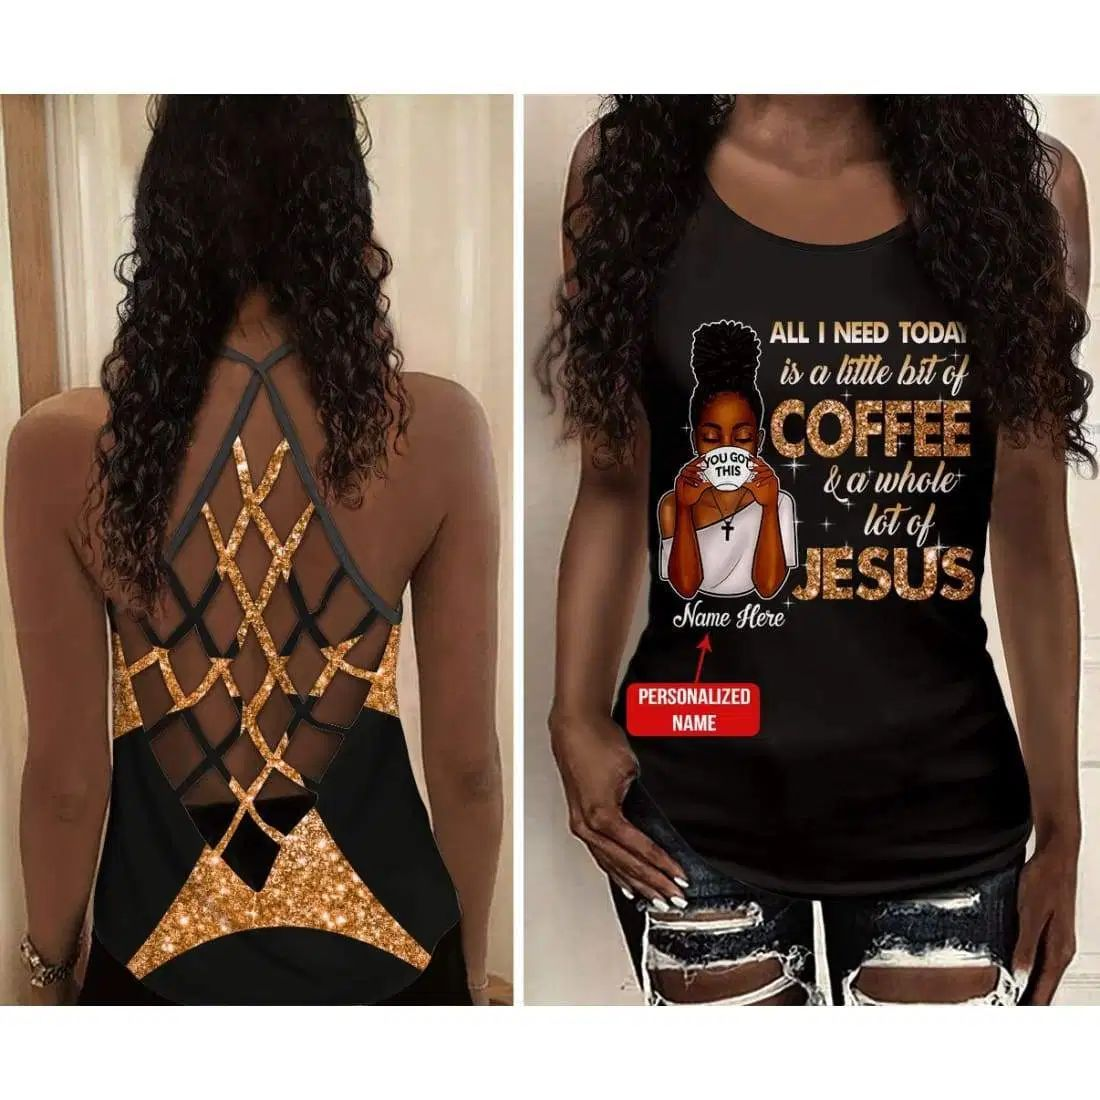 Personalized Name, Black Woman All I Need Today Is Coffee & Jesus Criss Cross Tank Tops